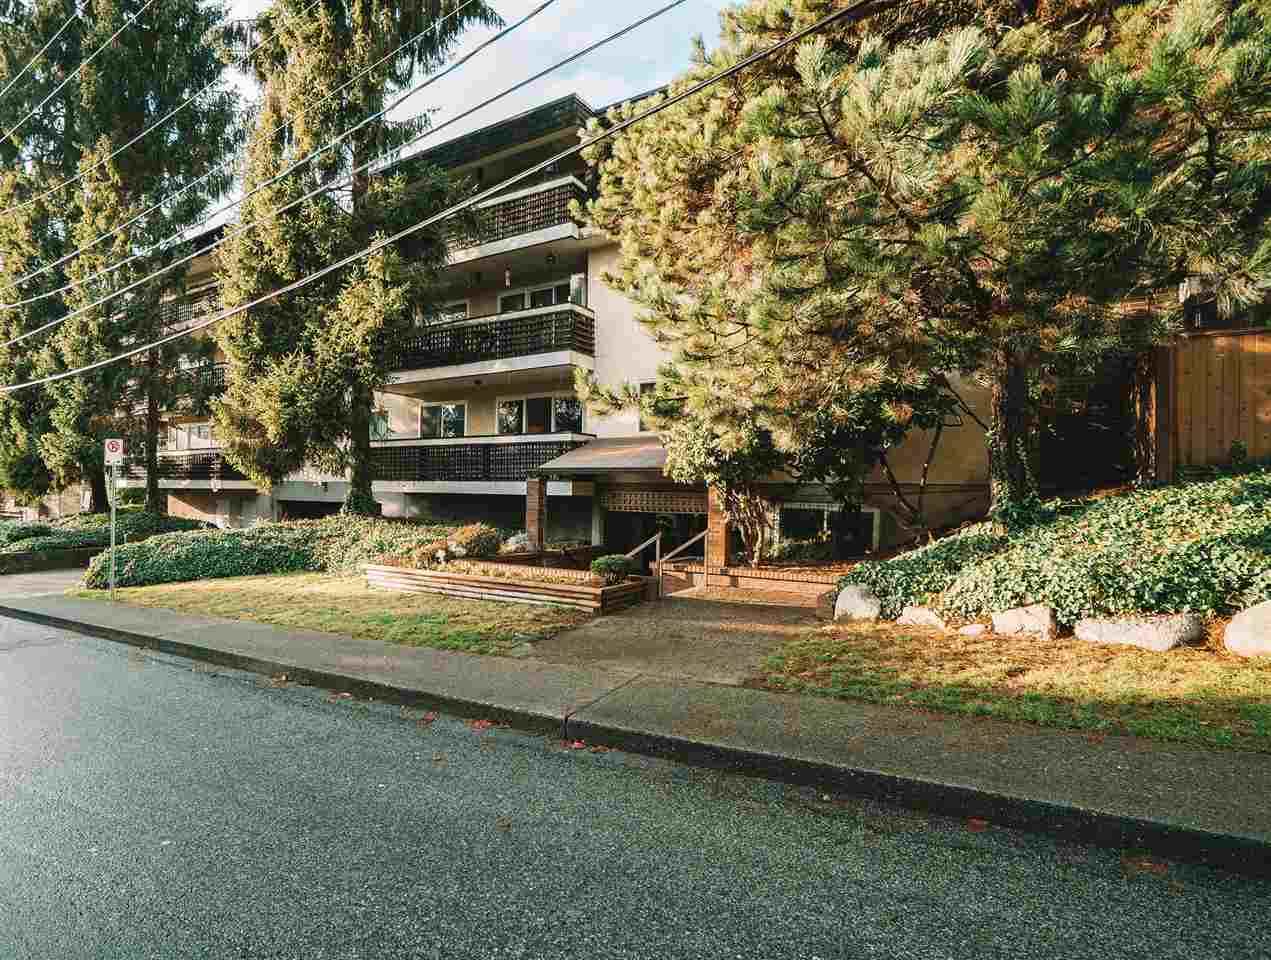 104 707 GLOUCESTER STREET - Uptown NW Apartment/Condo for sale, 2 Bedrooms (R2527840) - #21